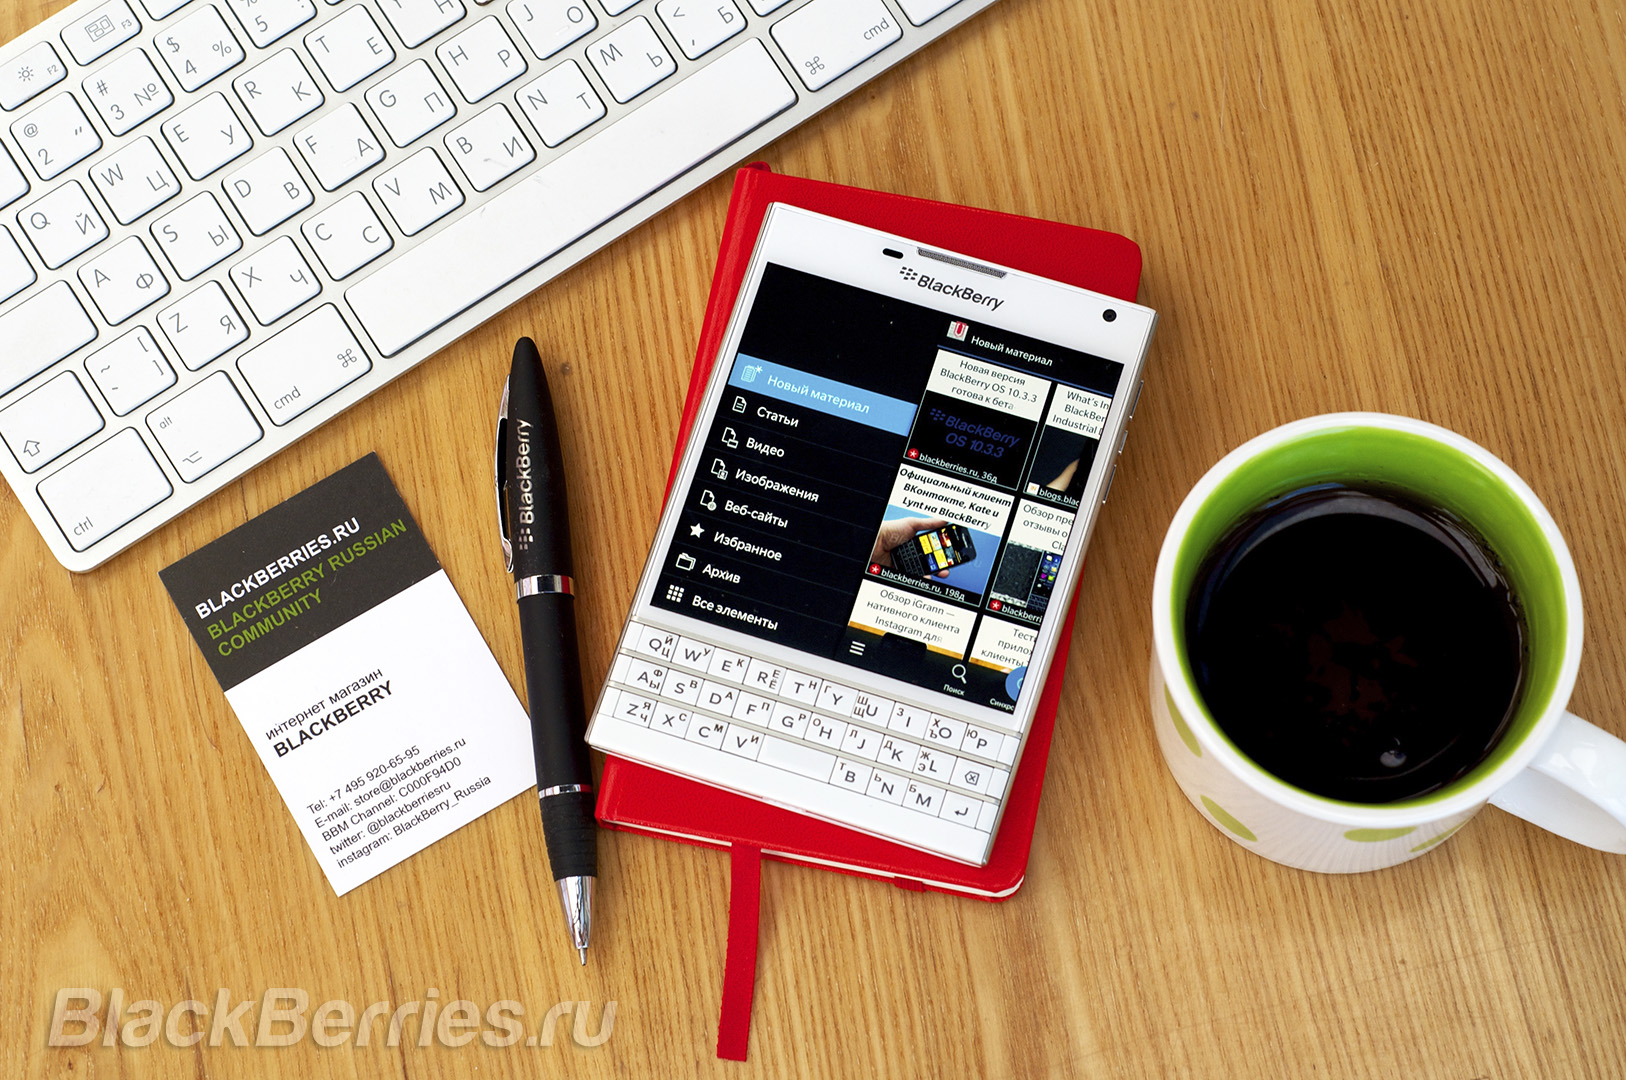 BlackBerry-Passport-Apps-31-07-13